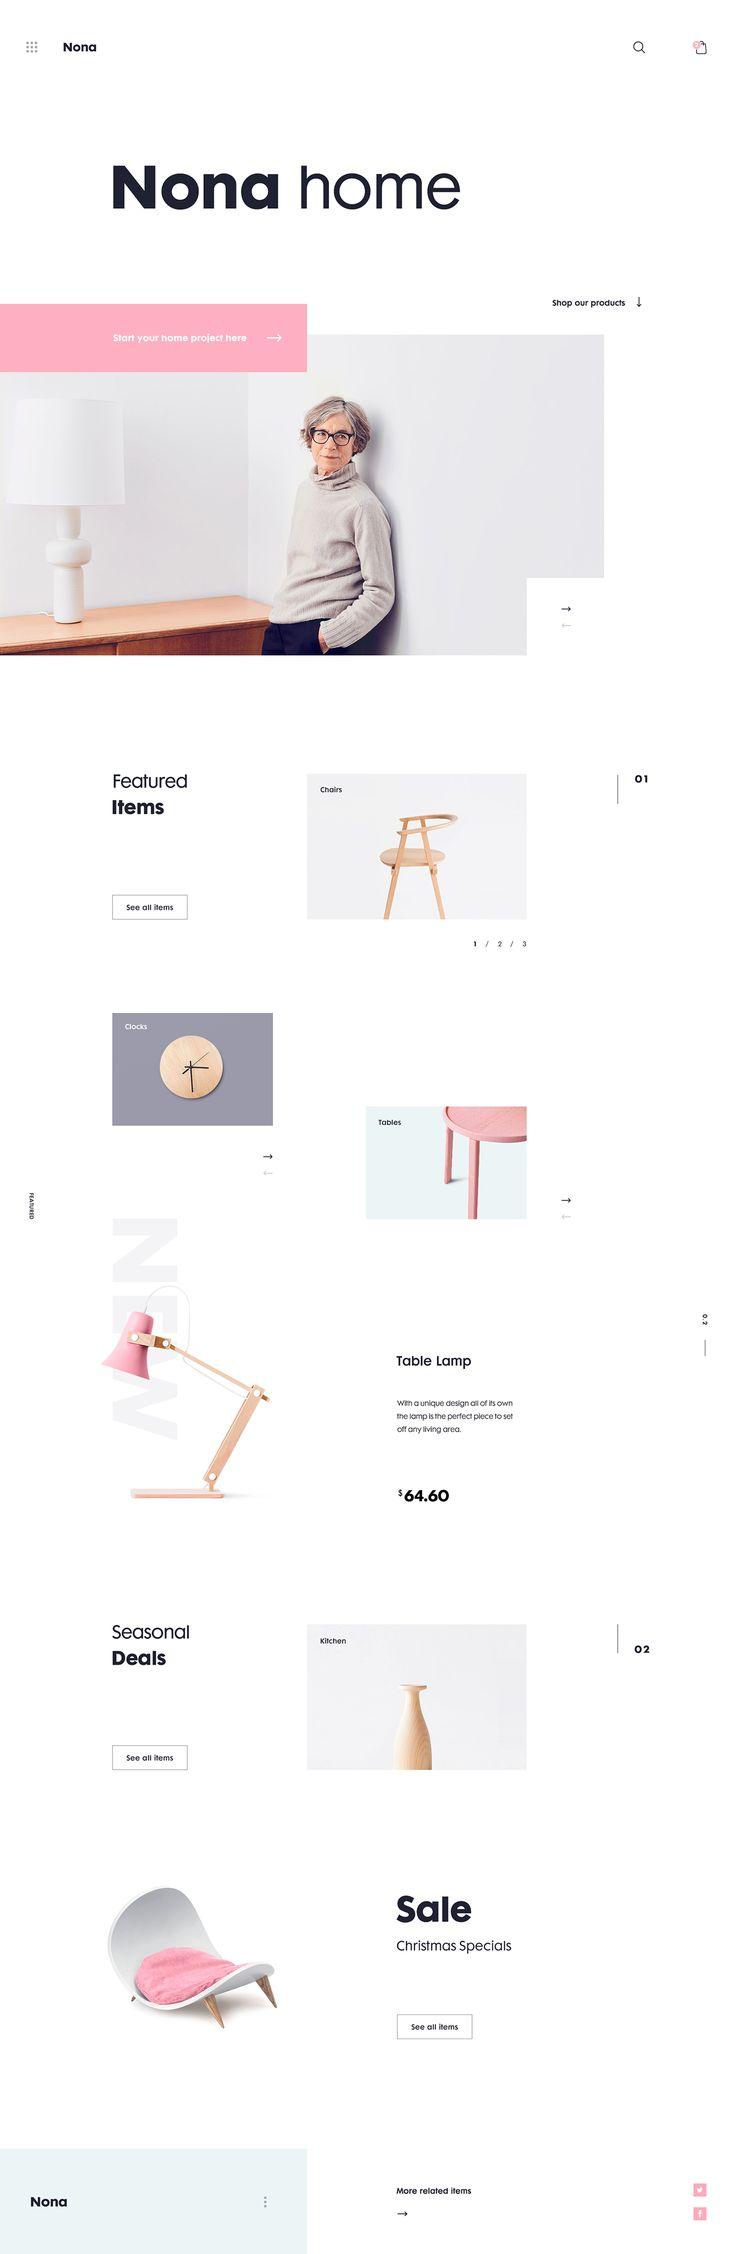 Minimal and Clean Web Design for Nona Home